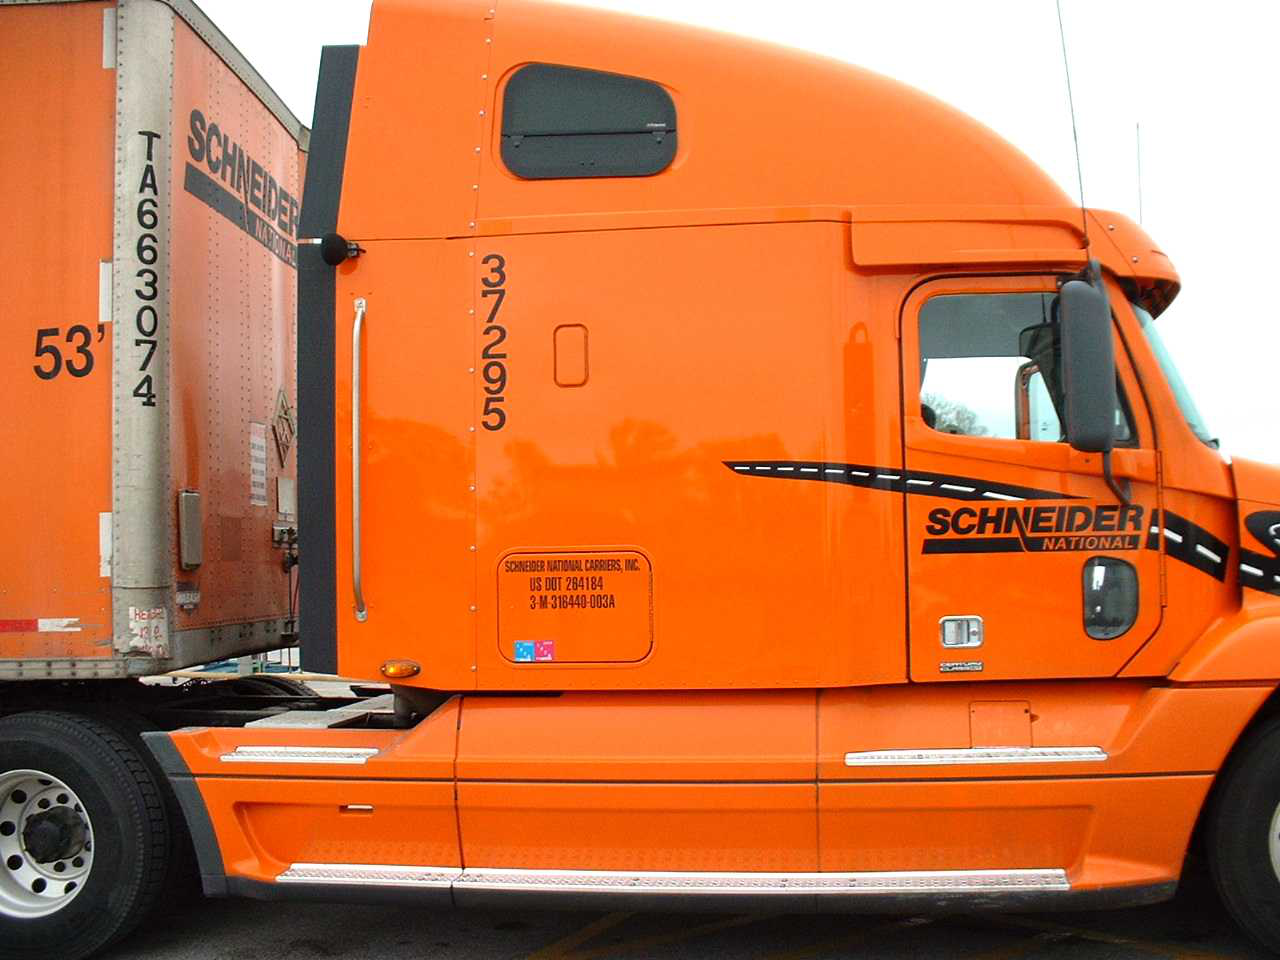 Schneider National celebrates 75th anniversary